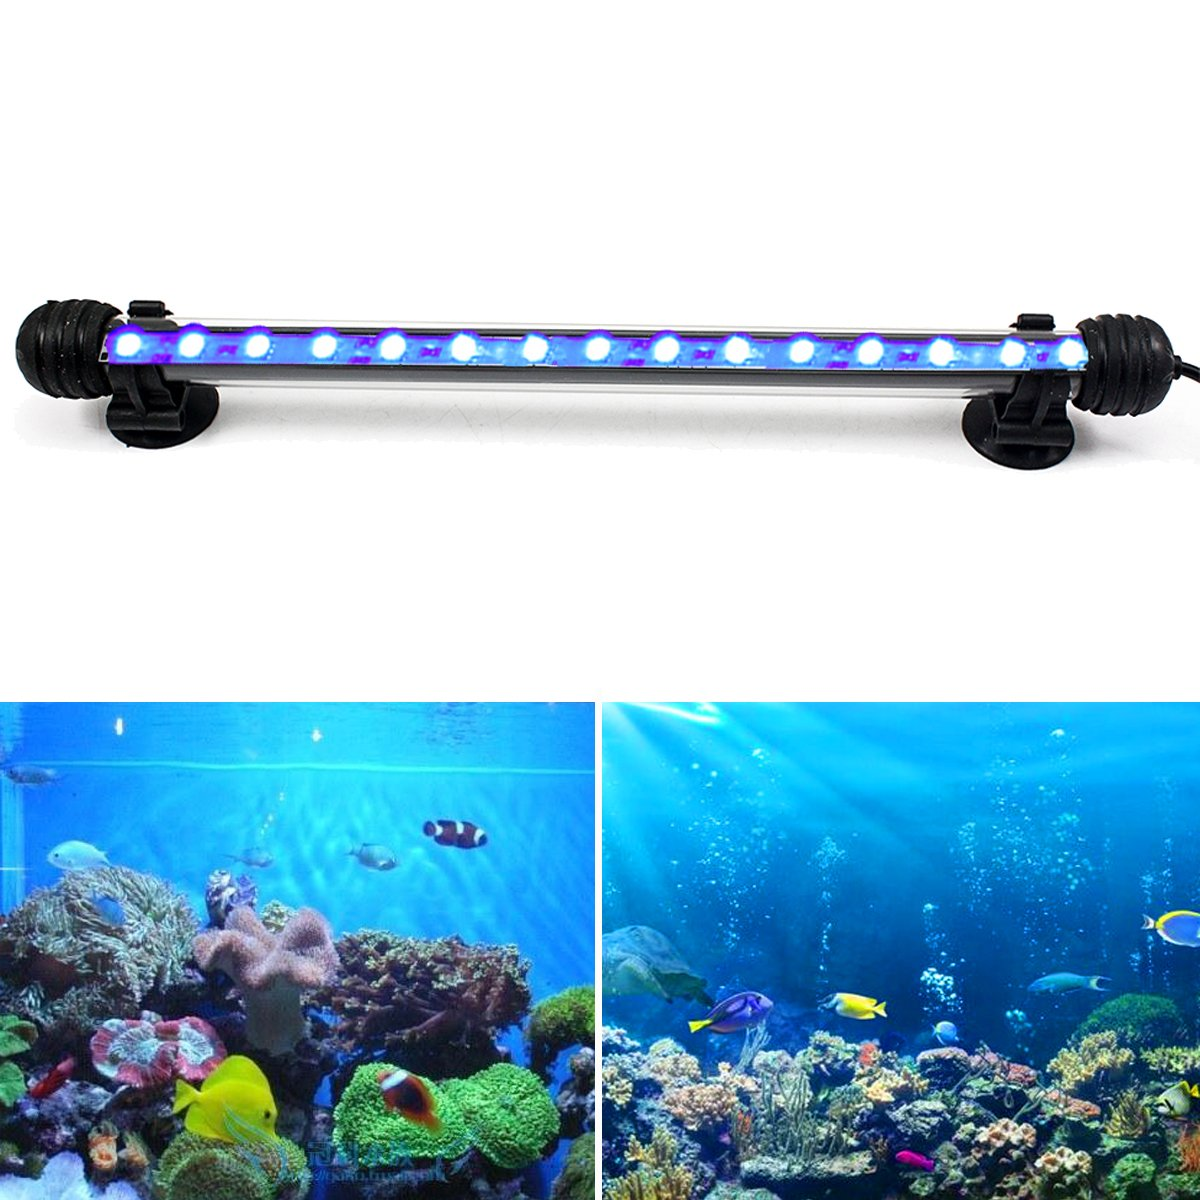 GreenSun LED Lighting 2W Submersible LED Aquarium Light, 12V 9 LEDs 5050SMD Underwater Strip Light for Fish Tank, White